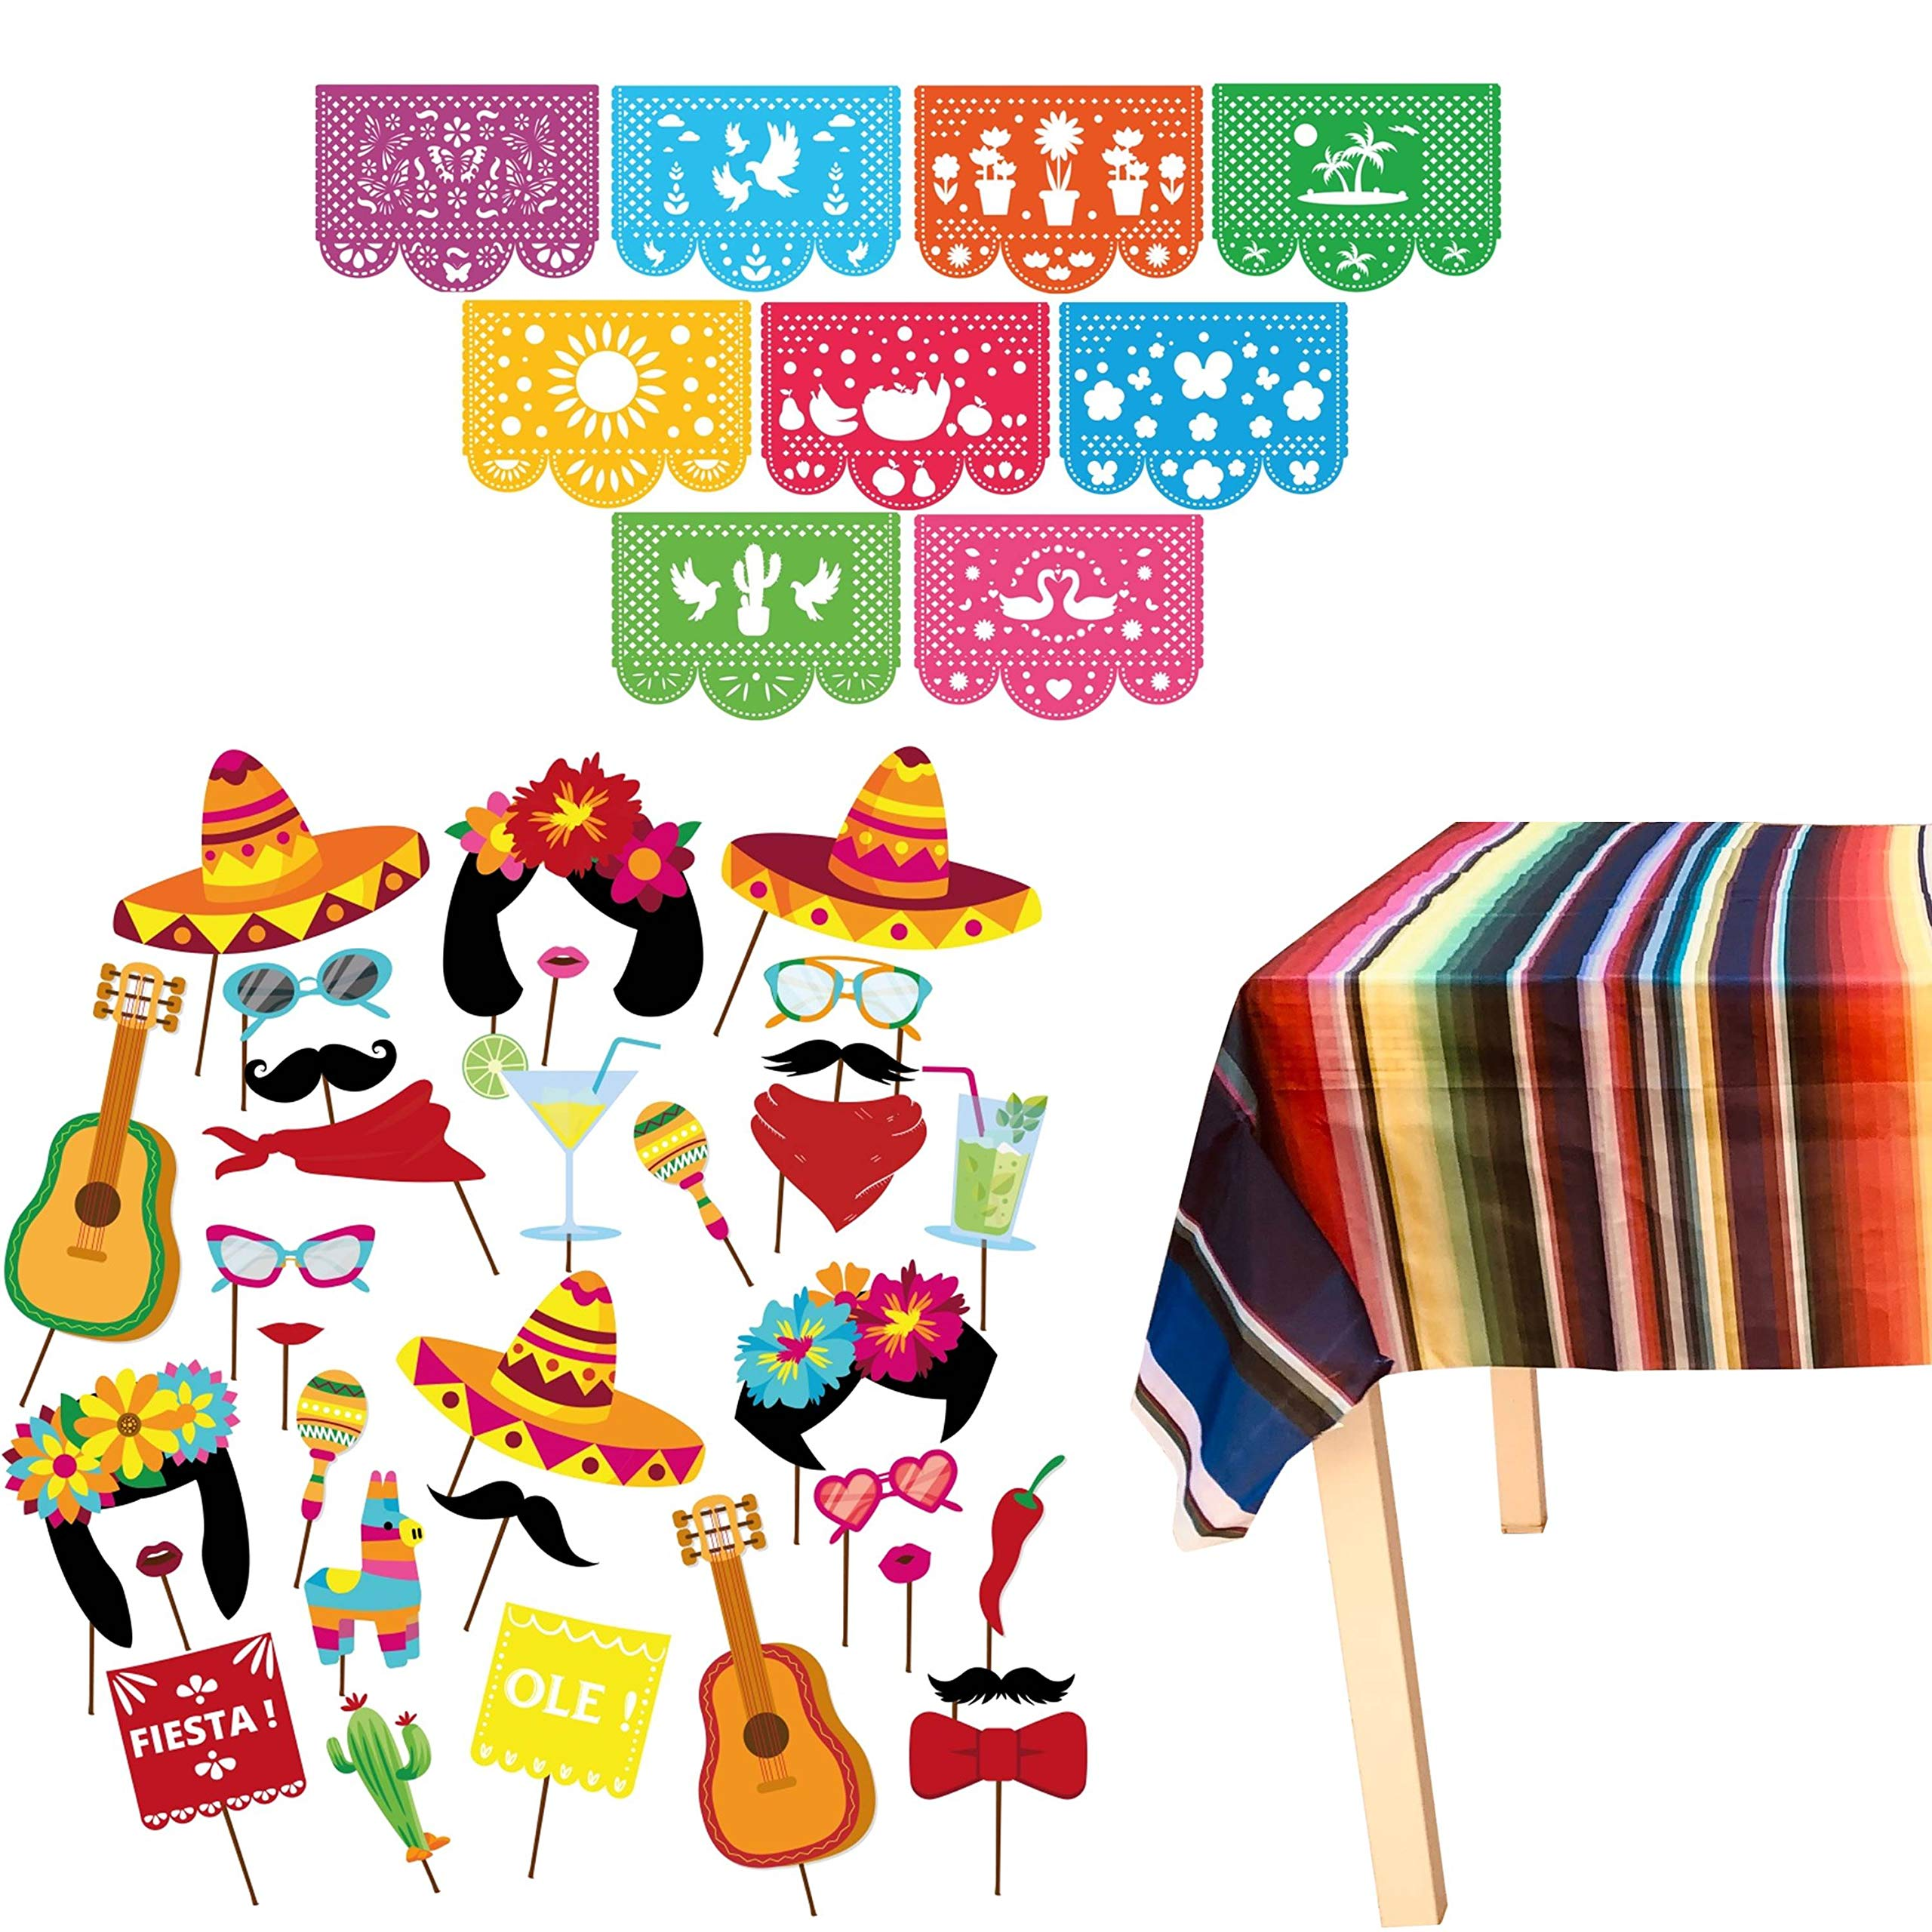 JELDA's Fiesta Photo Booth Props - with Mexican Party Decorations   Fiesta Party Supplies for Cinco De Mayo, Coco, Taco   Large Papel Picado Banner   Plastic Serape Table Cover